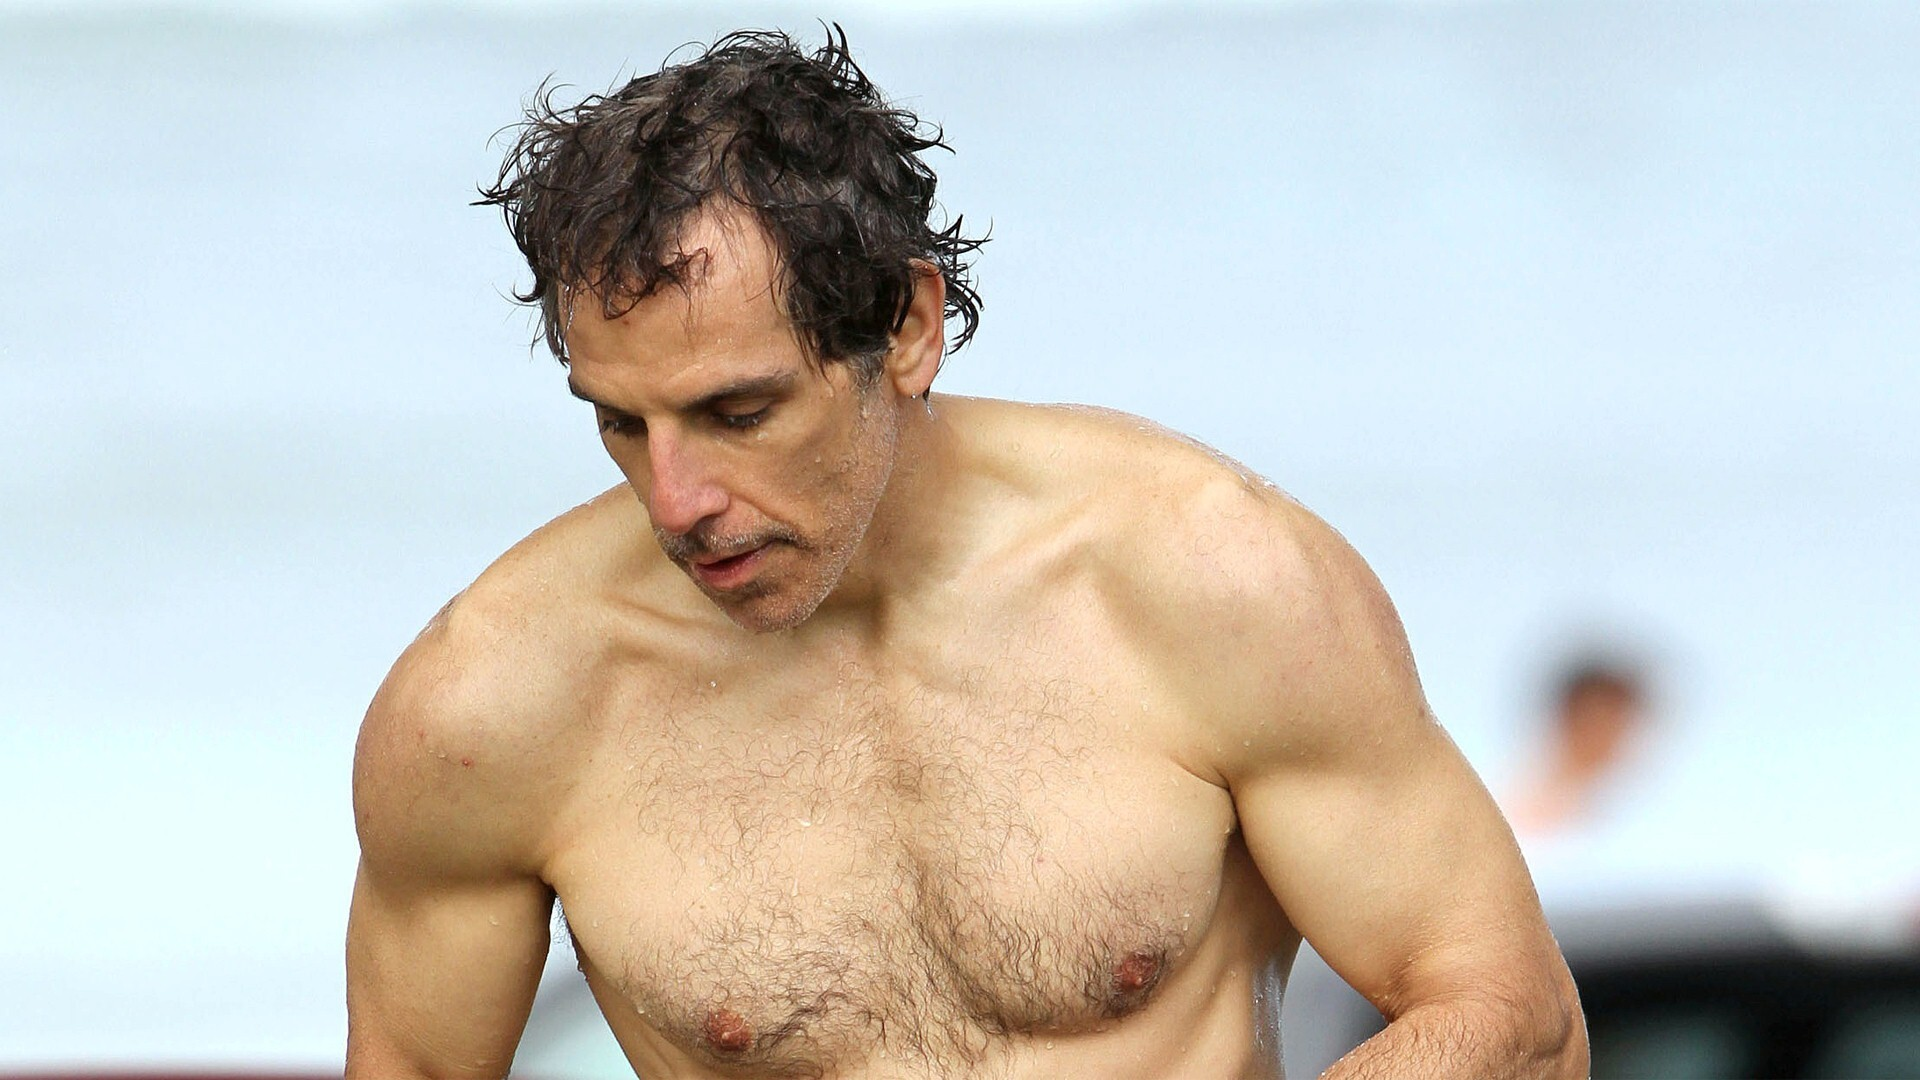 Hollywood Actor Ben Stiller Six Pack Abs Body Wallpapers